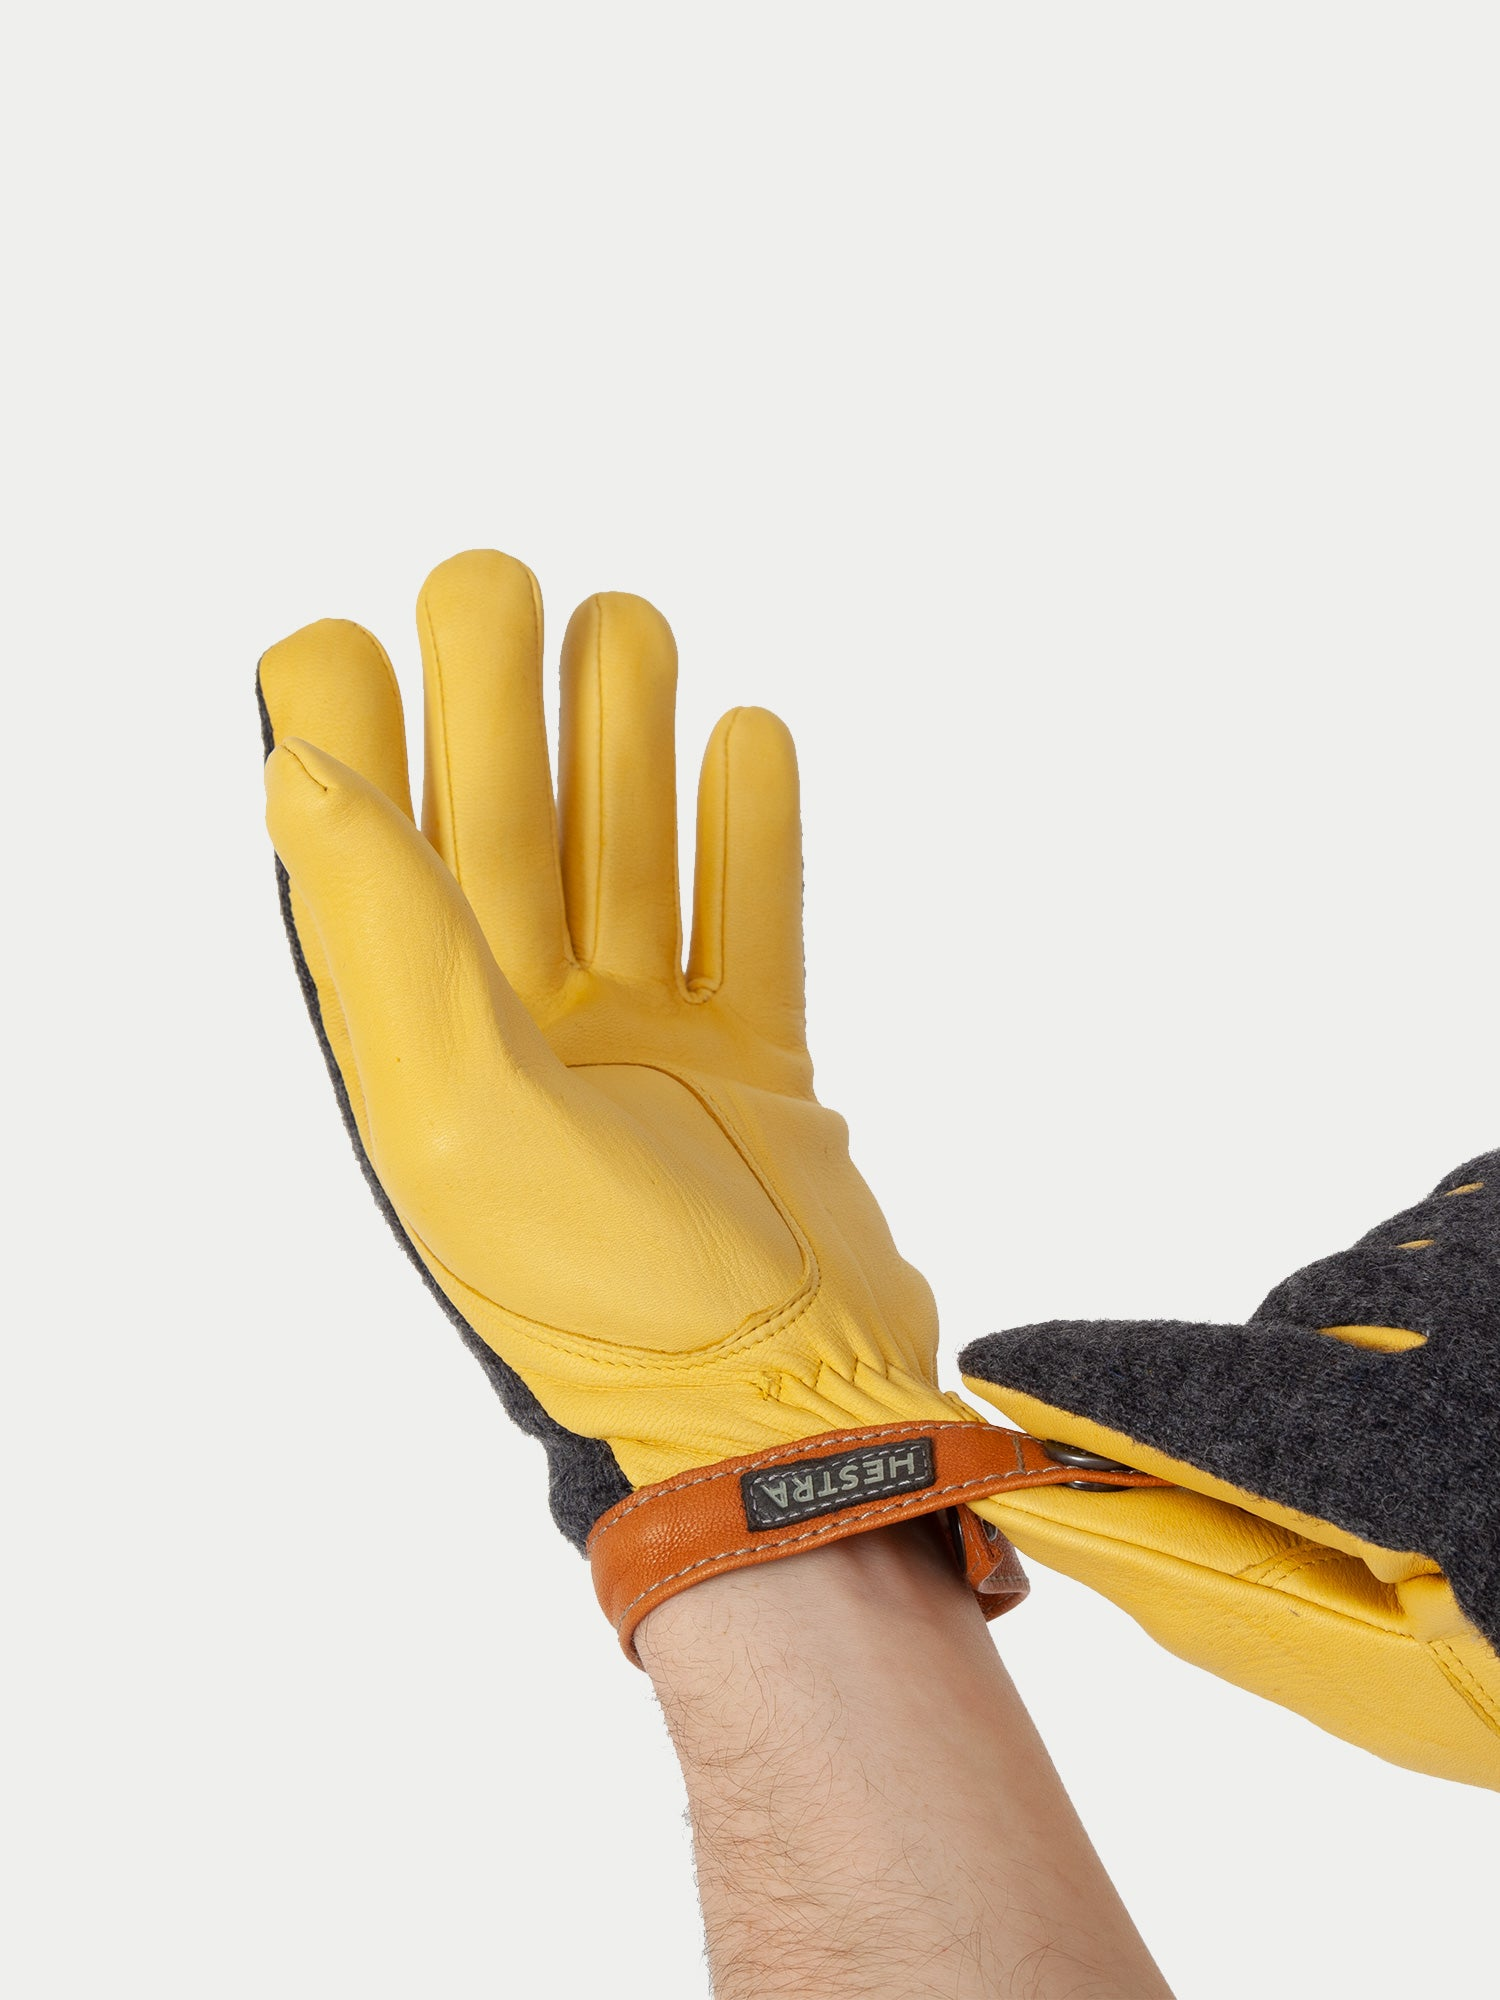 Hestra Deerskin Tricot Glove (Grey & Yellow) m1